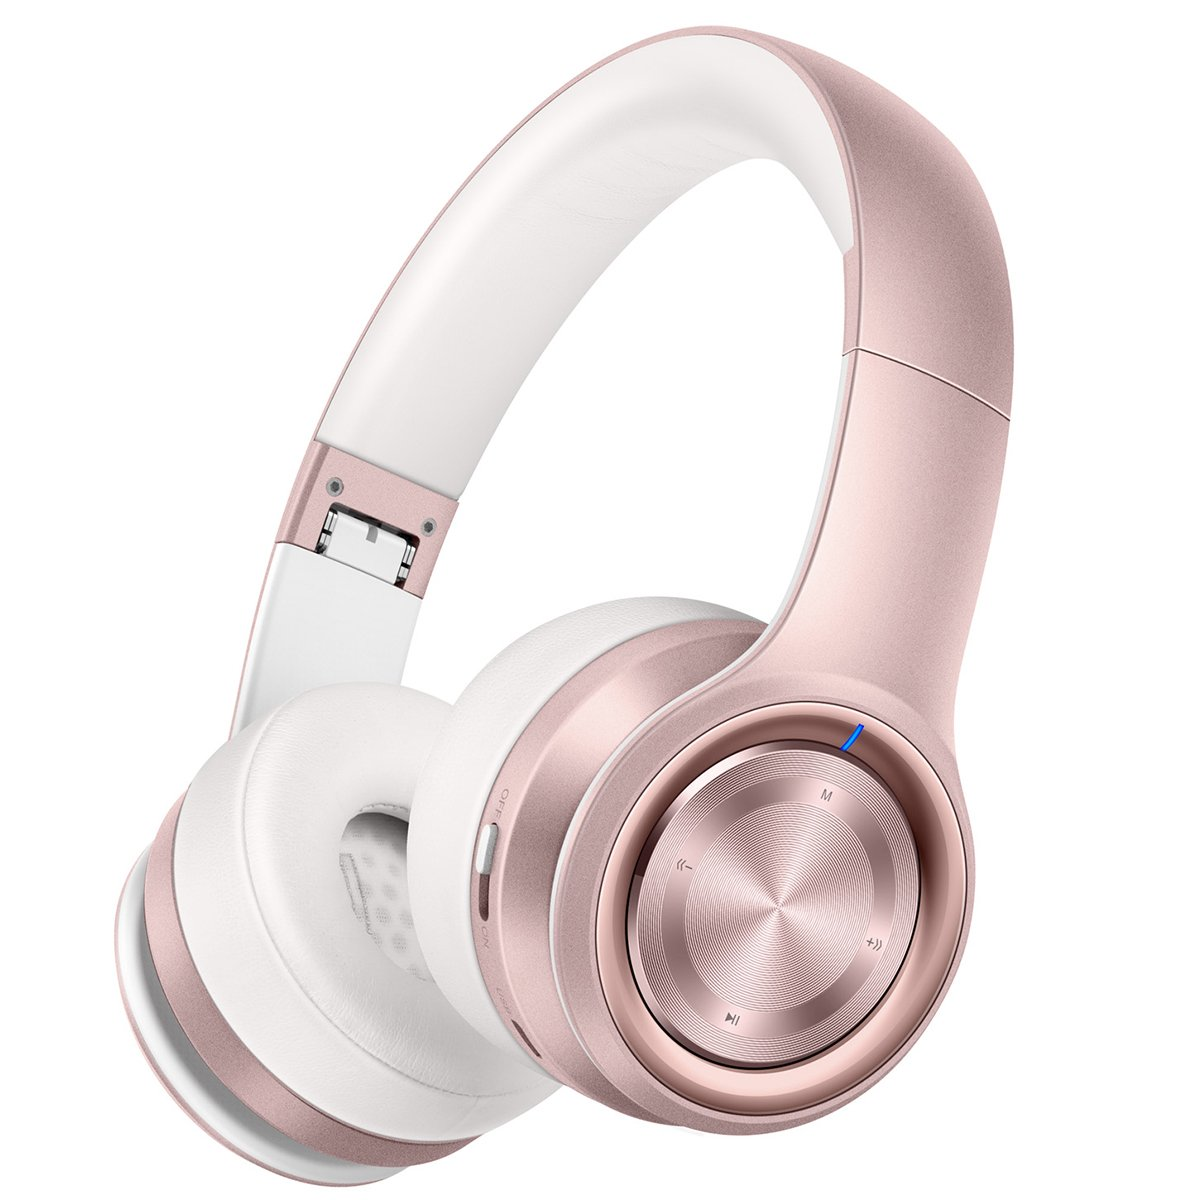 Picun P26 Bluetooth Headphones Over Ear 40H Playtime Hi-Fi Stereo Wireless Headphones Girl Deep Bass Foldable Wired/Wireless/TF for Phone/TV Bluetooth 5.0 Wireless Earphones with Mic Women (Rose Gold) by Picun